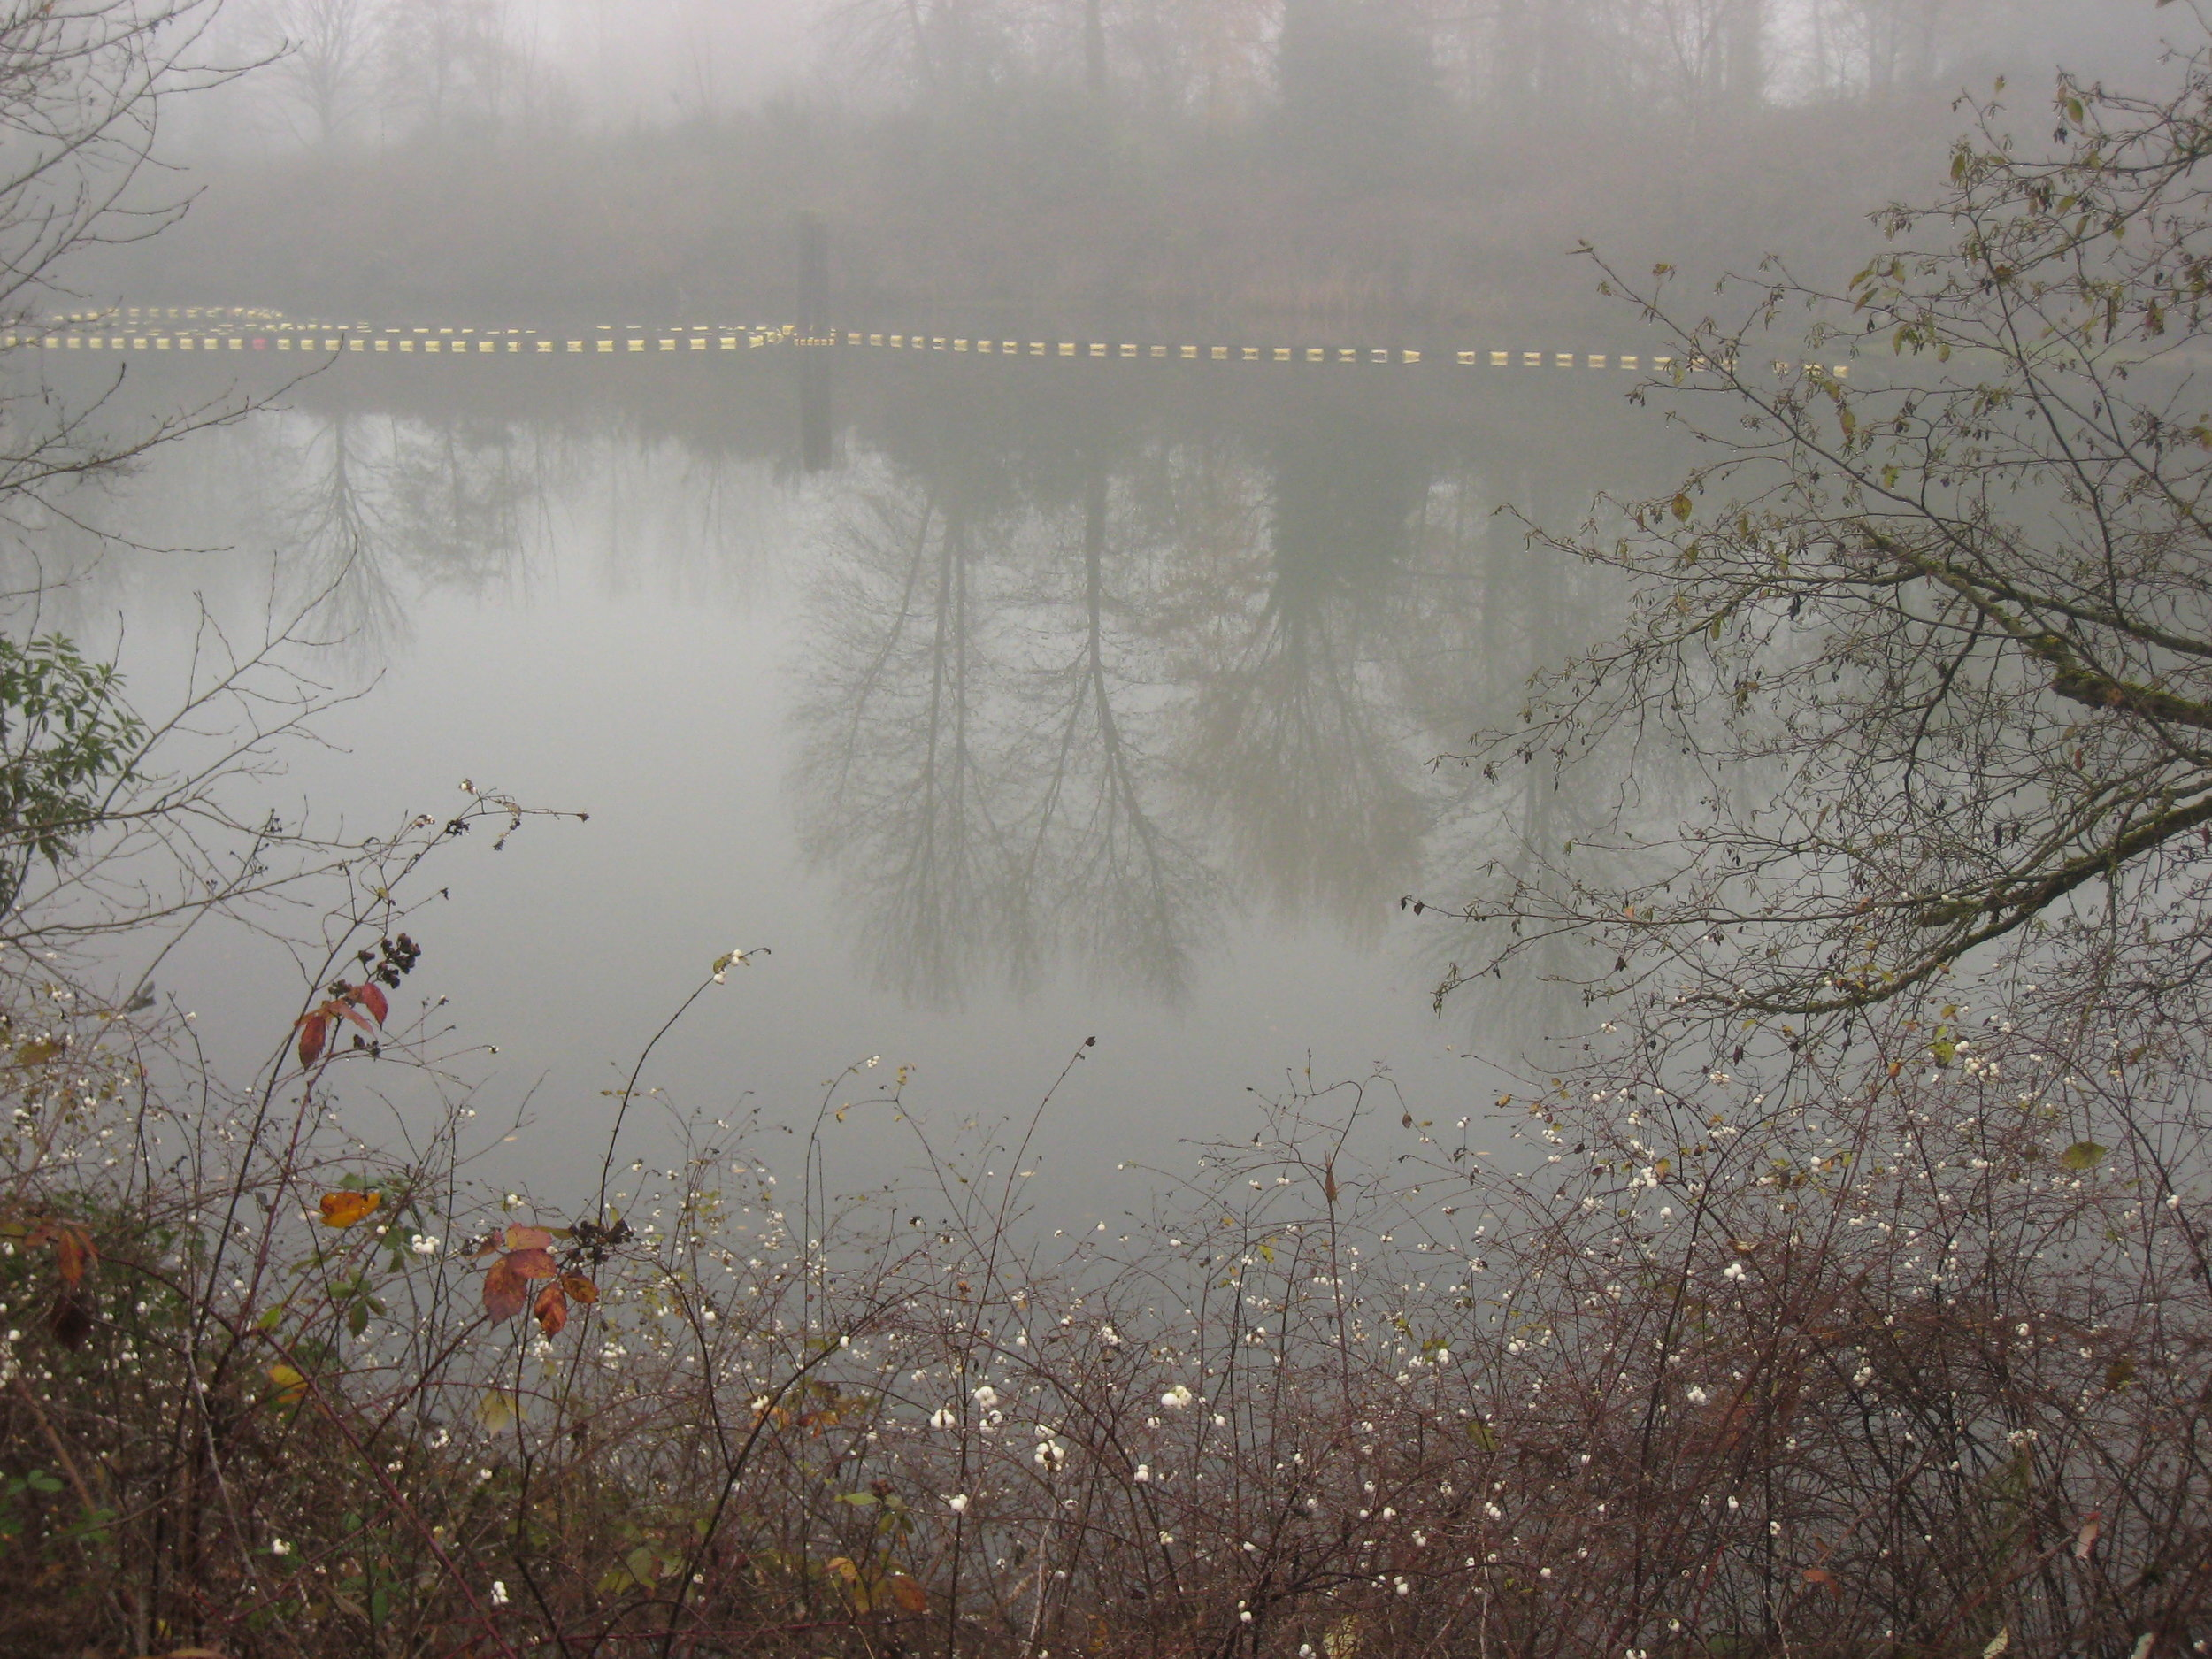 Image 4 / Snowberries, oil spill plume, and fog on the Duwamish river. Image by Don Brubeck (flickr creative commons)